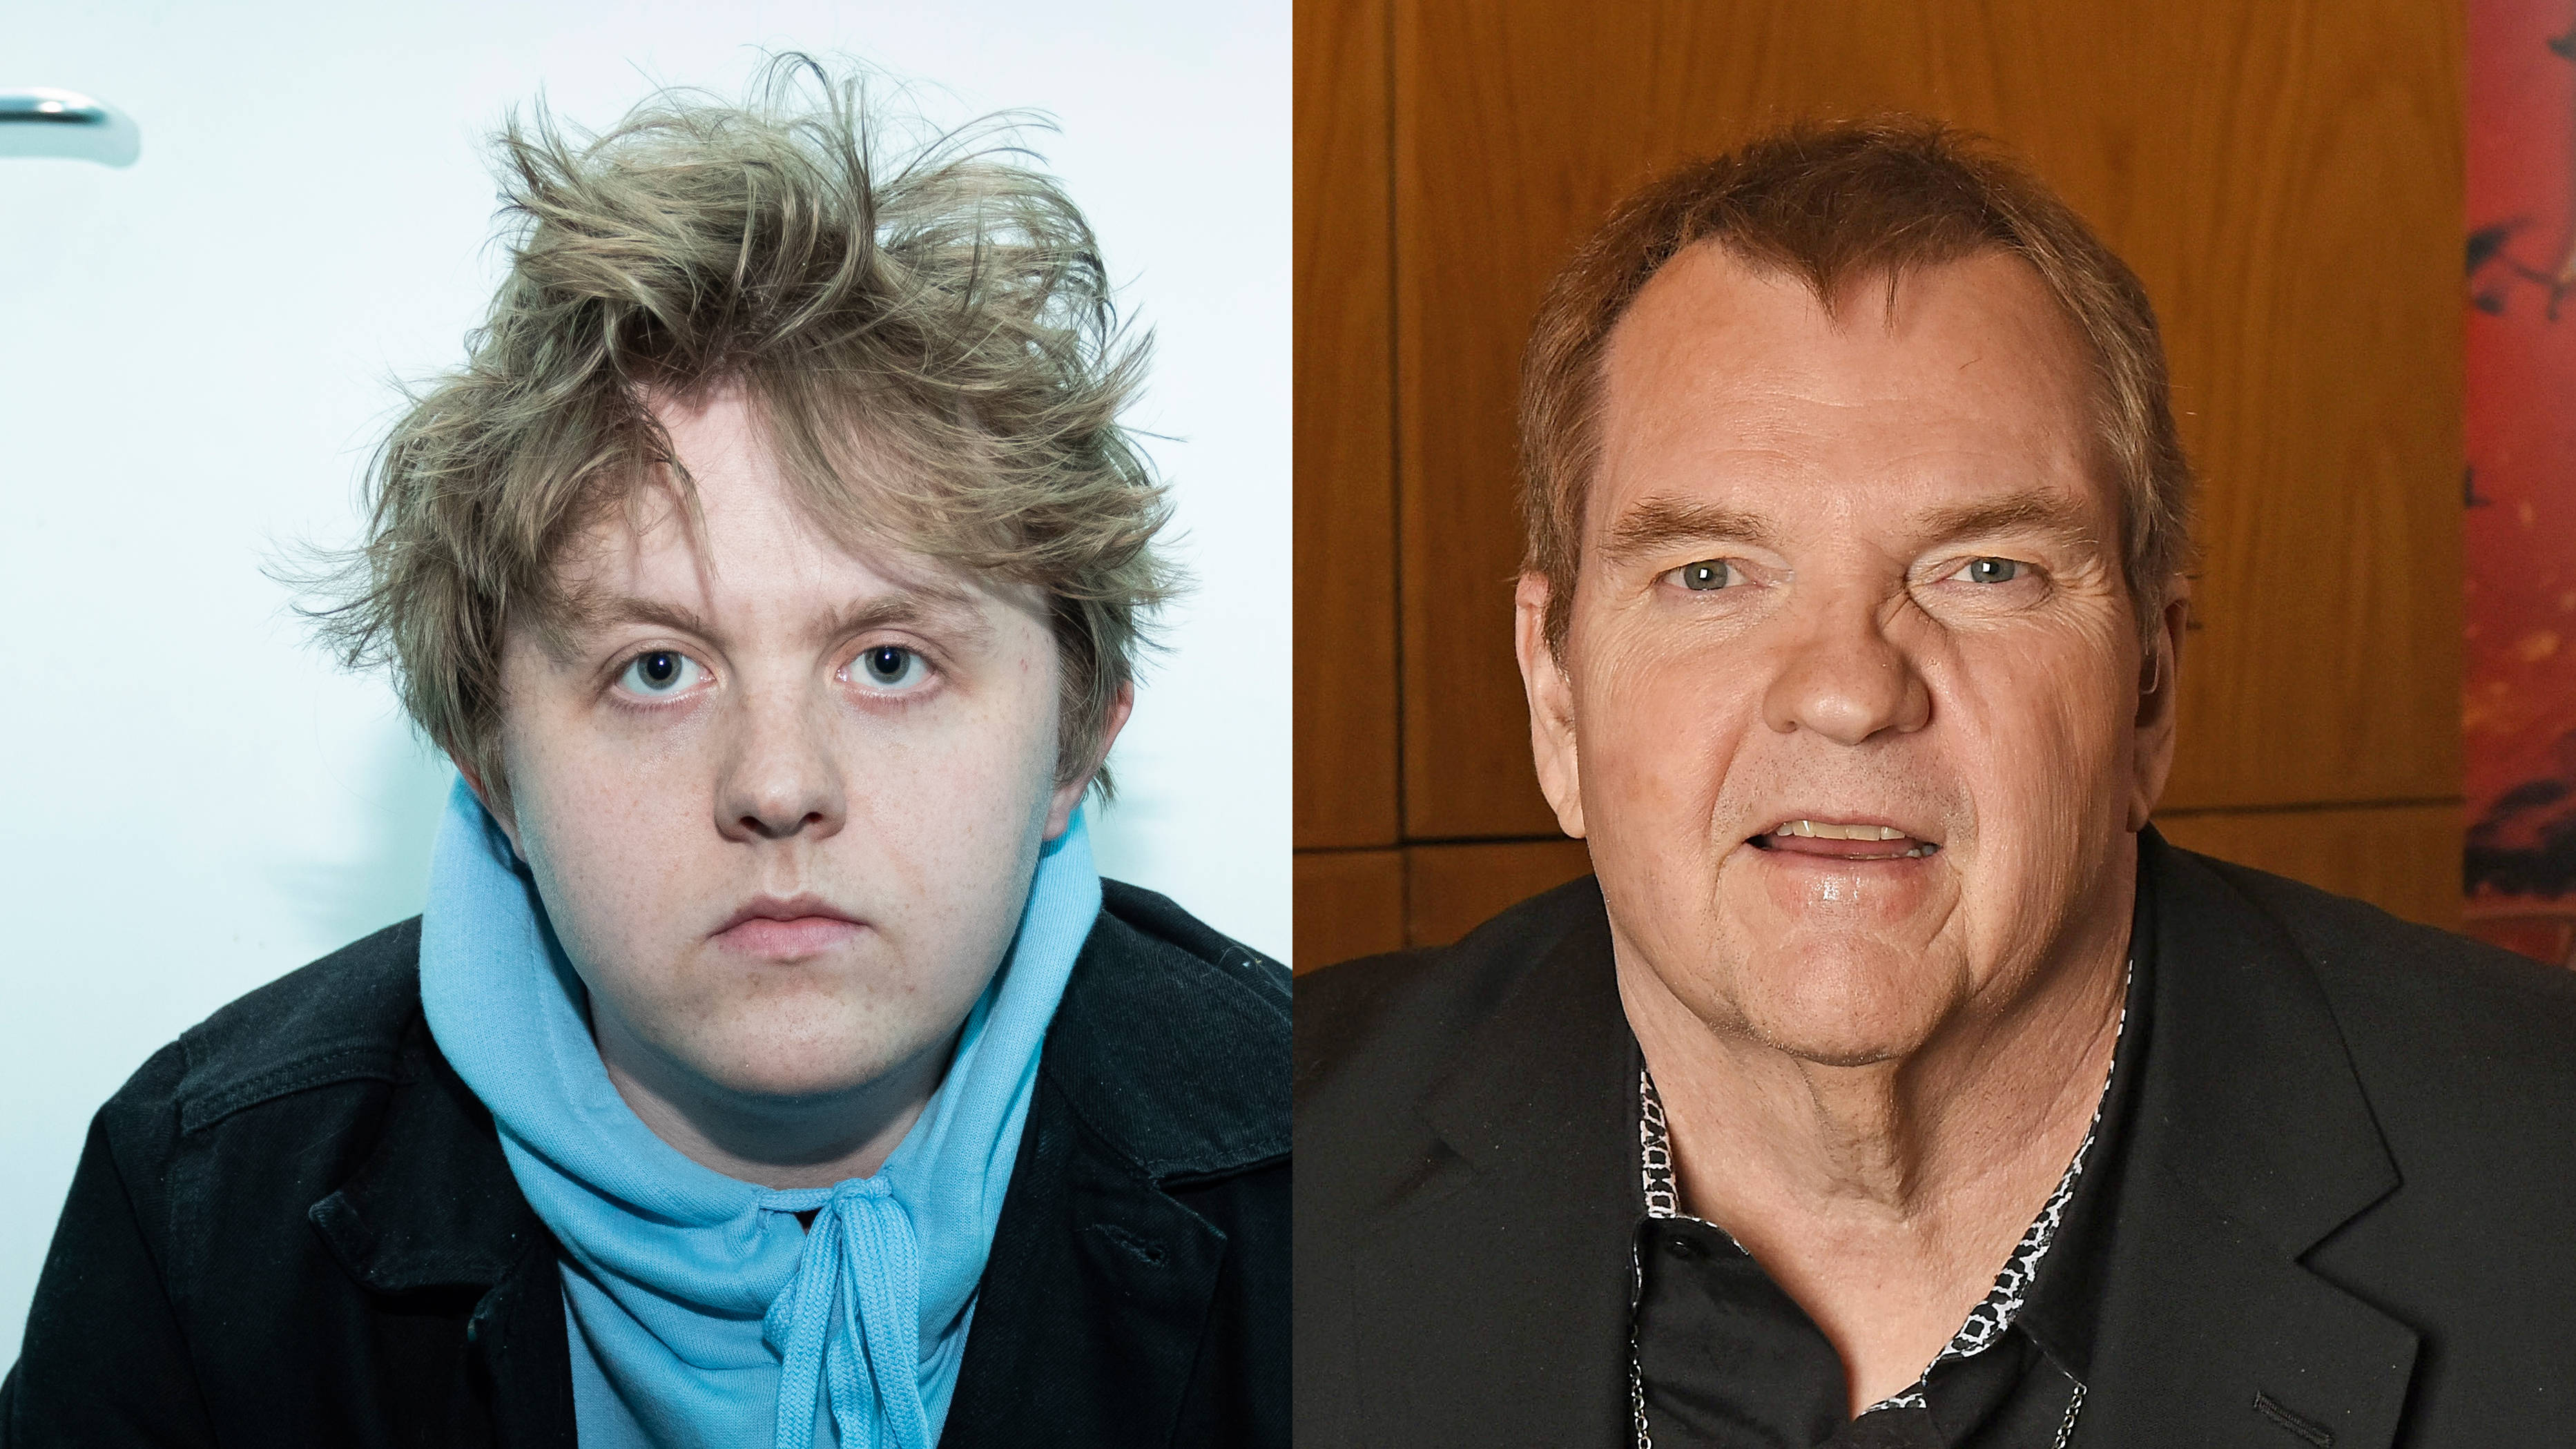 Lewis Capaldi wants Meat Loaf to play him in movie biopic